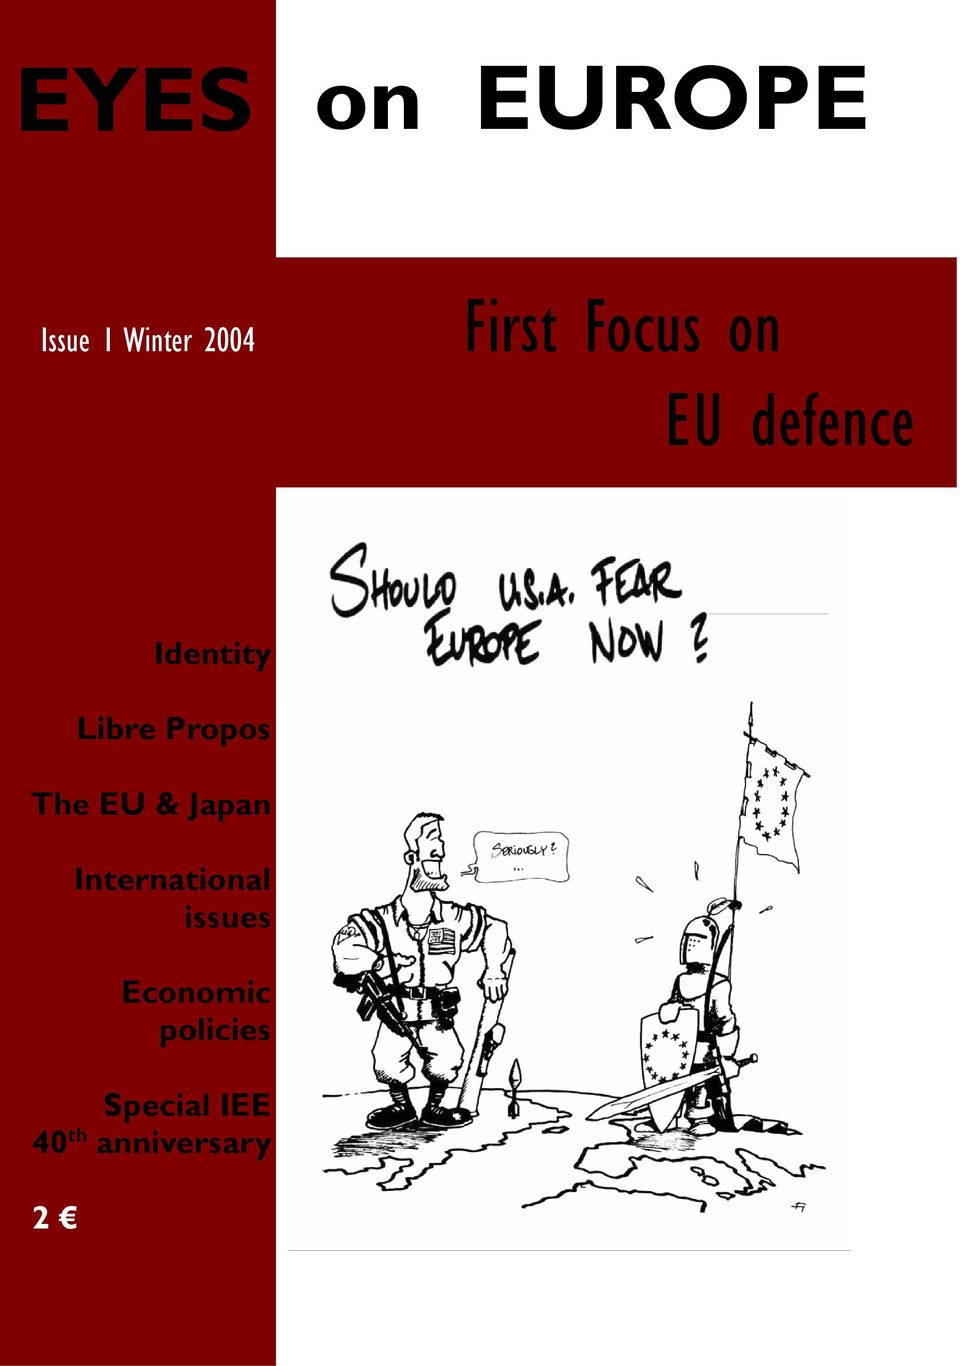 The EU & Japan International issues